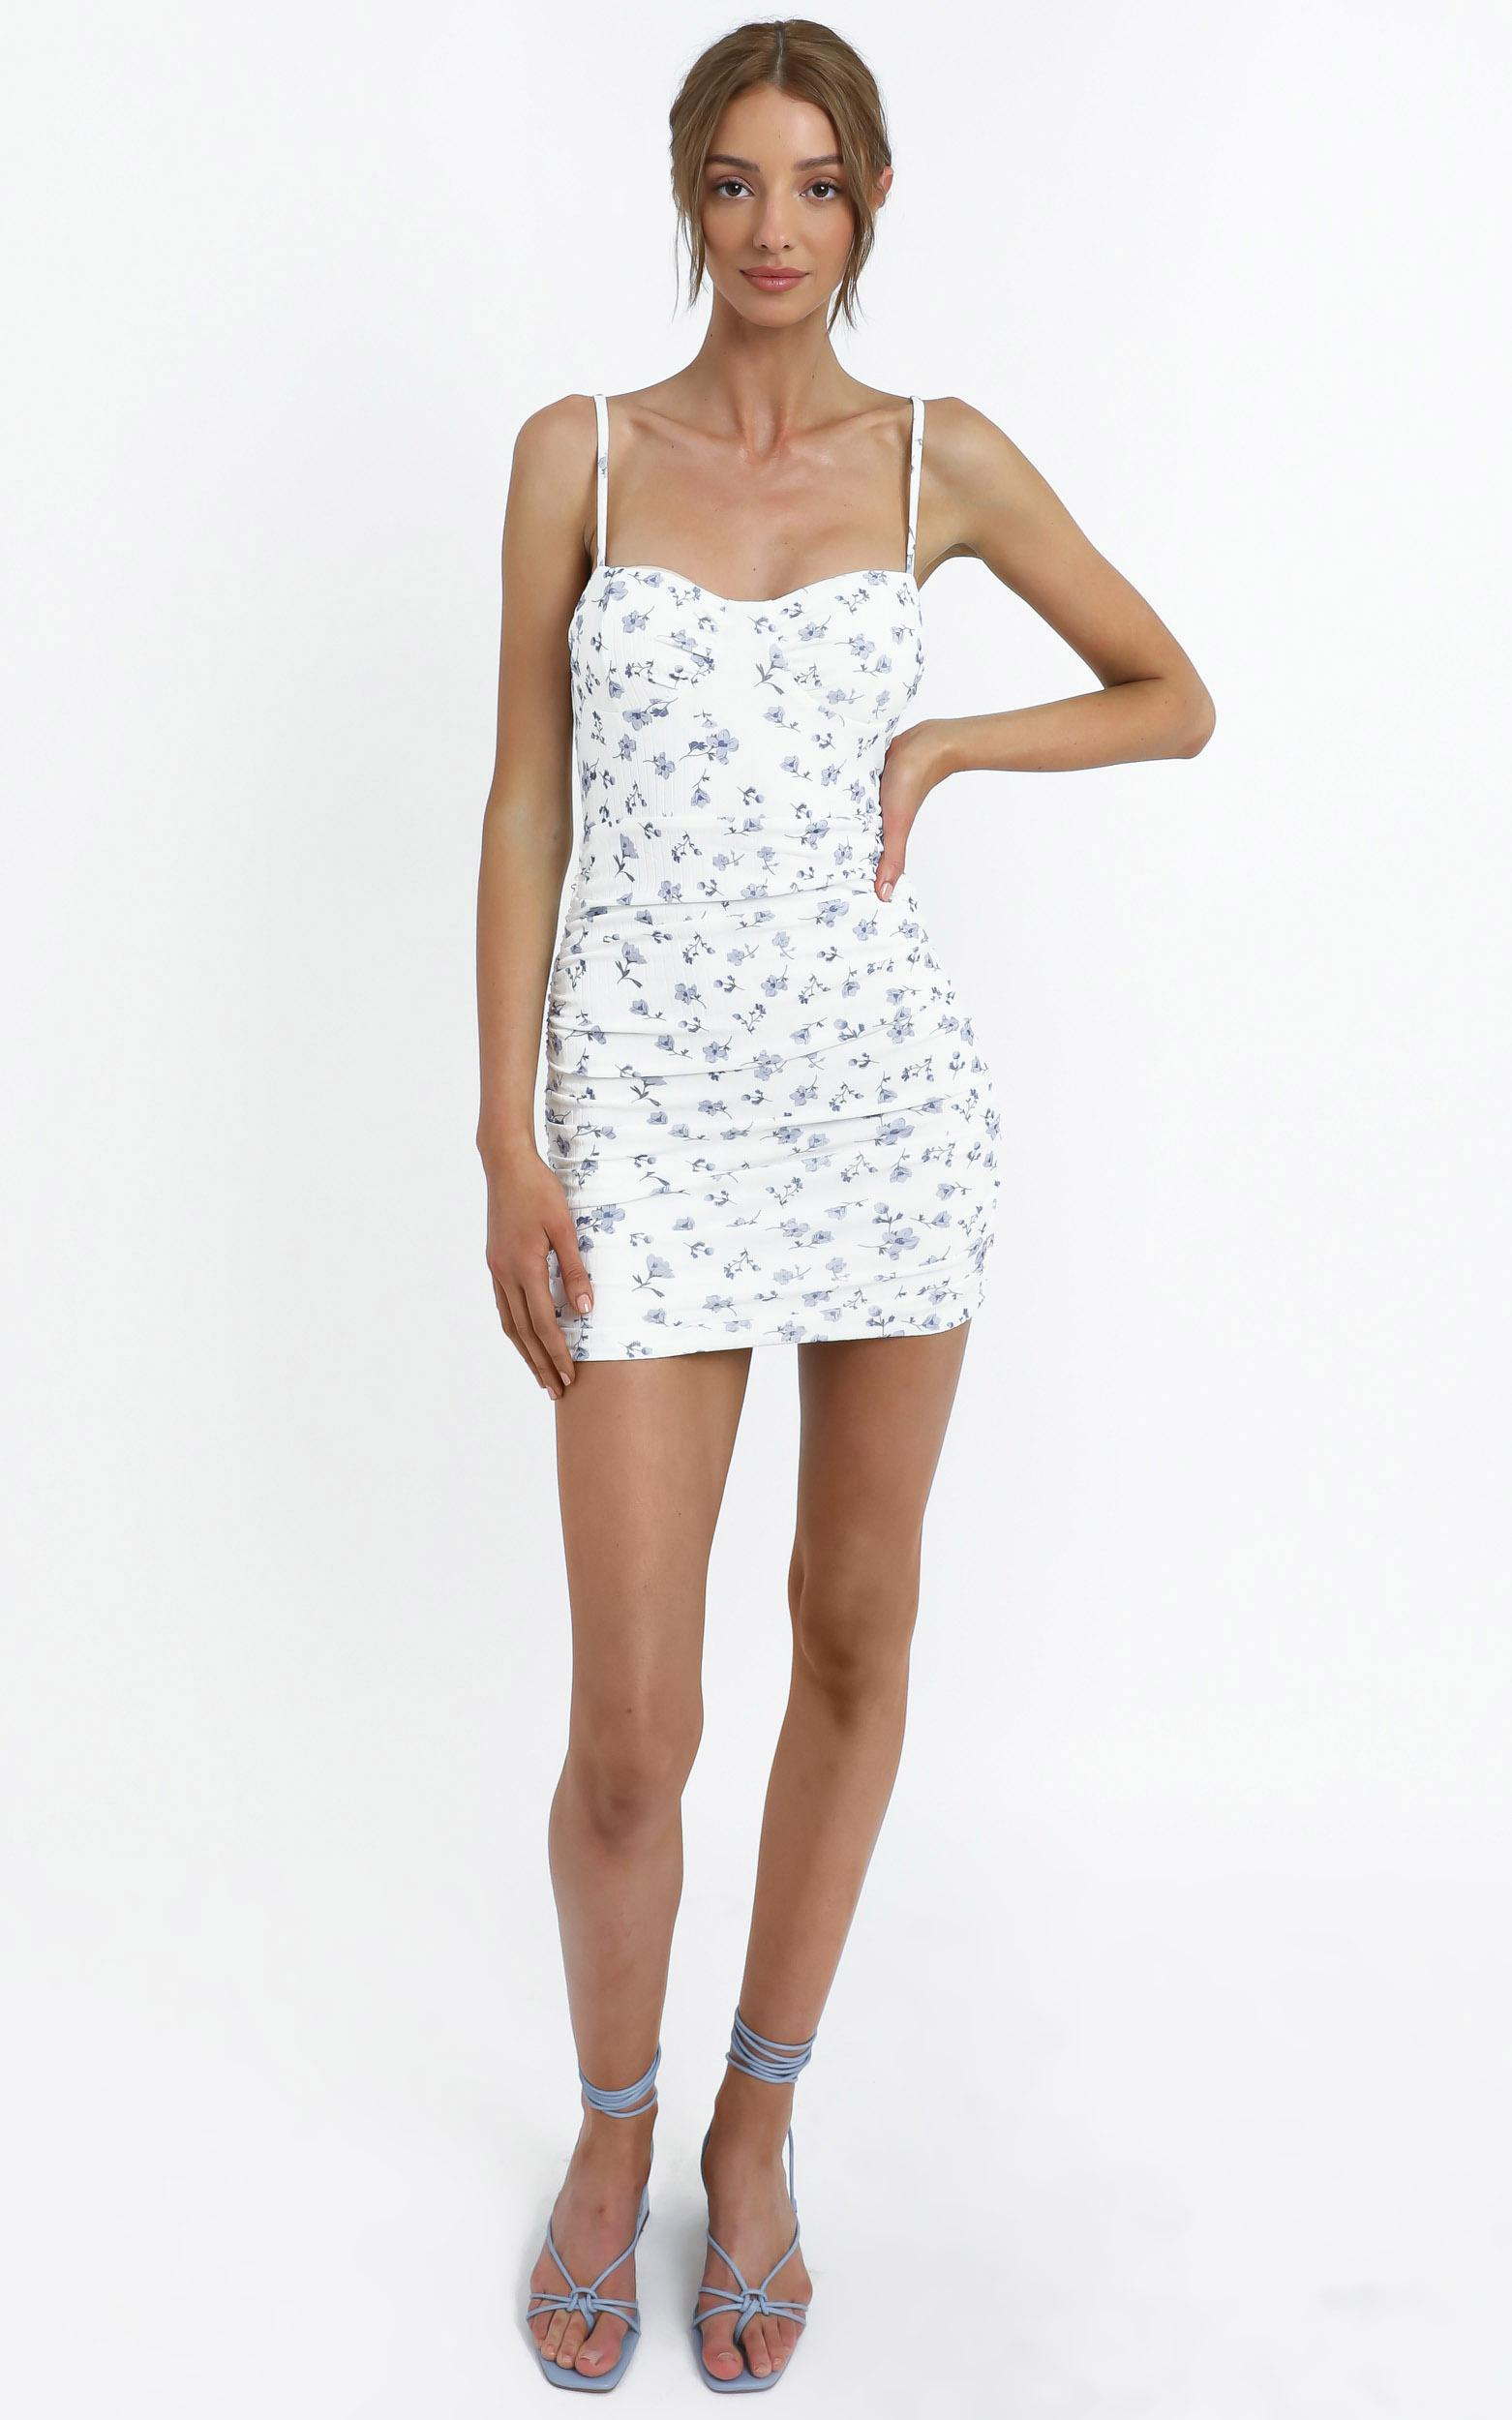 Whitaker Dress in White Floral - 12 (L), White, hi-res image number null